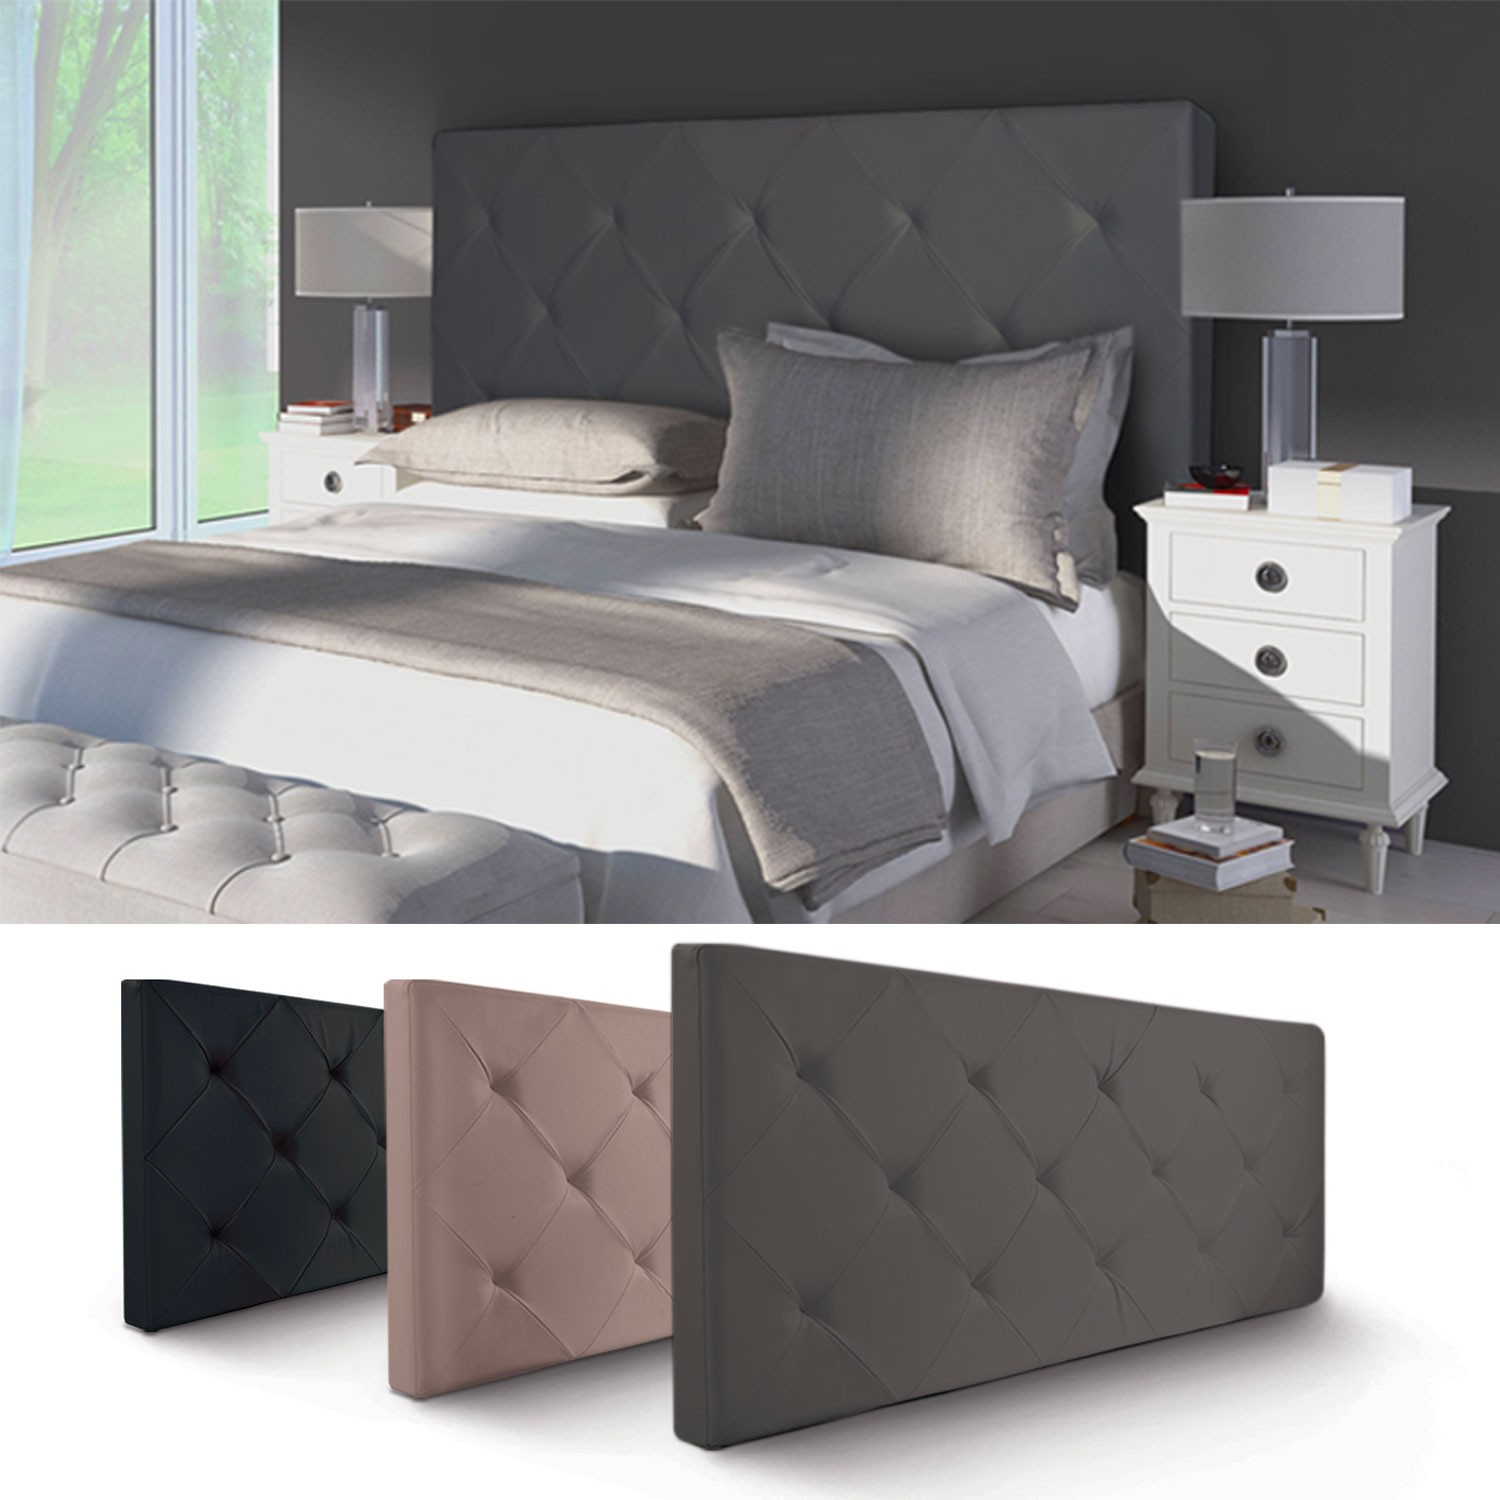 tete de lit simili cuir gris maison design. Black Bedroom Furniture Sets. Home Design Ideas